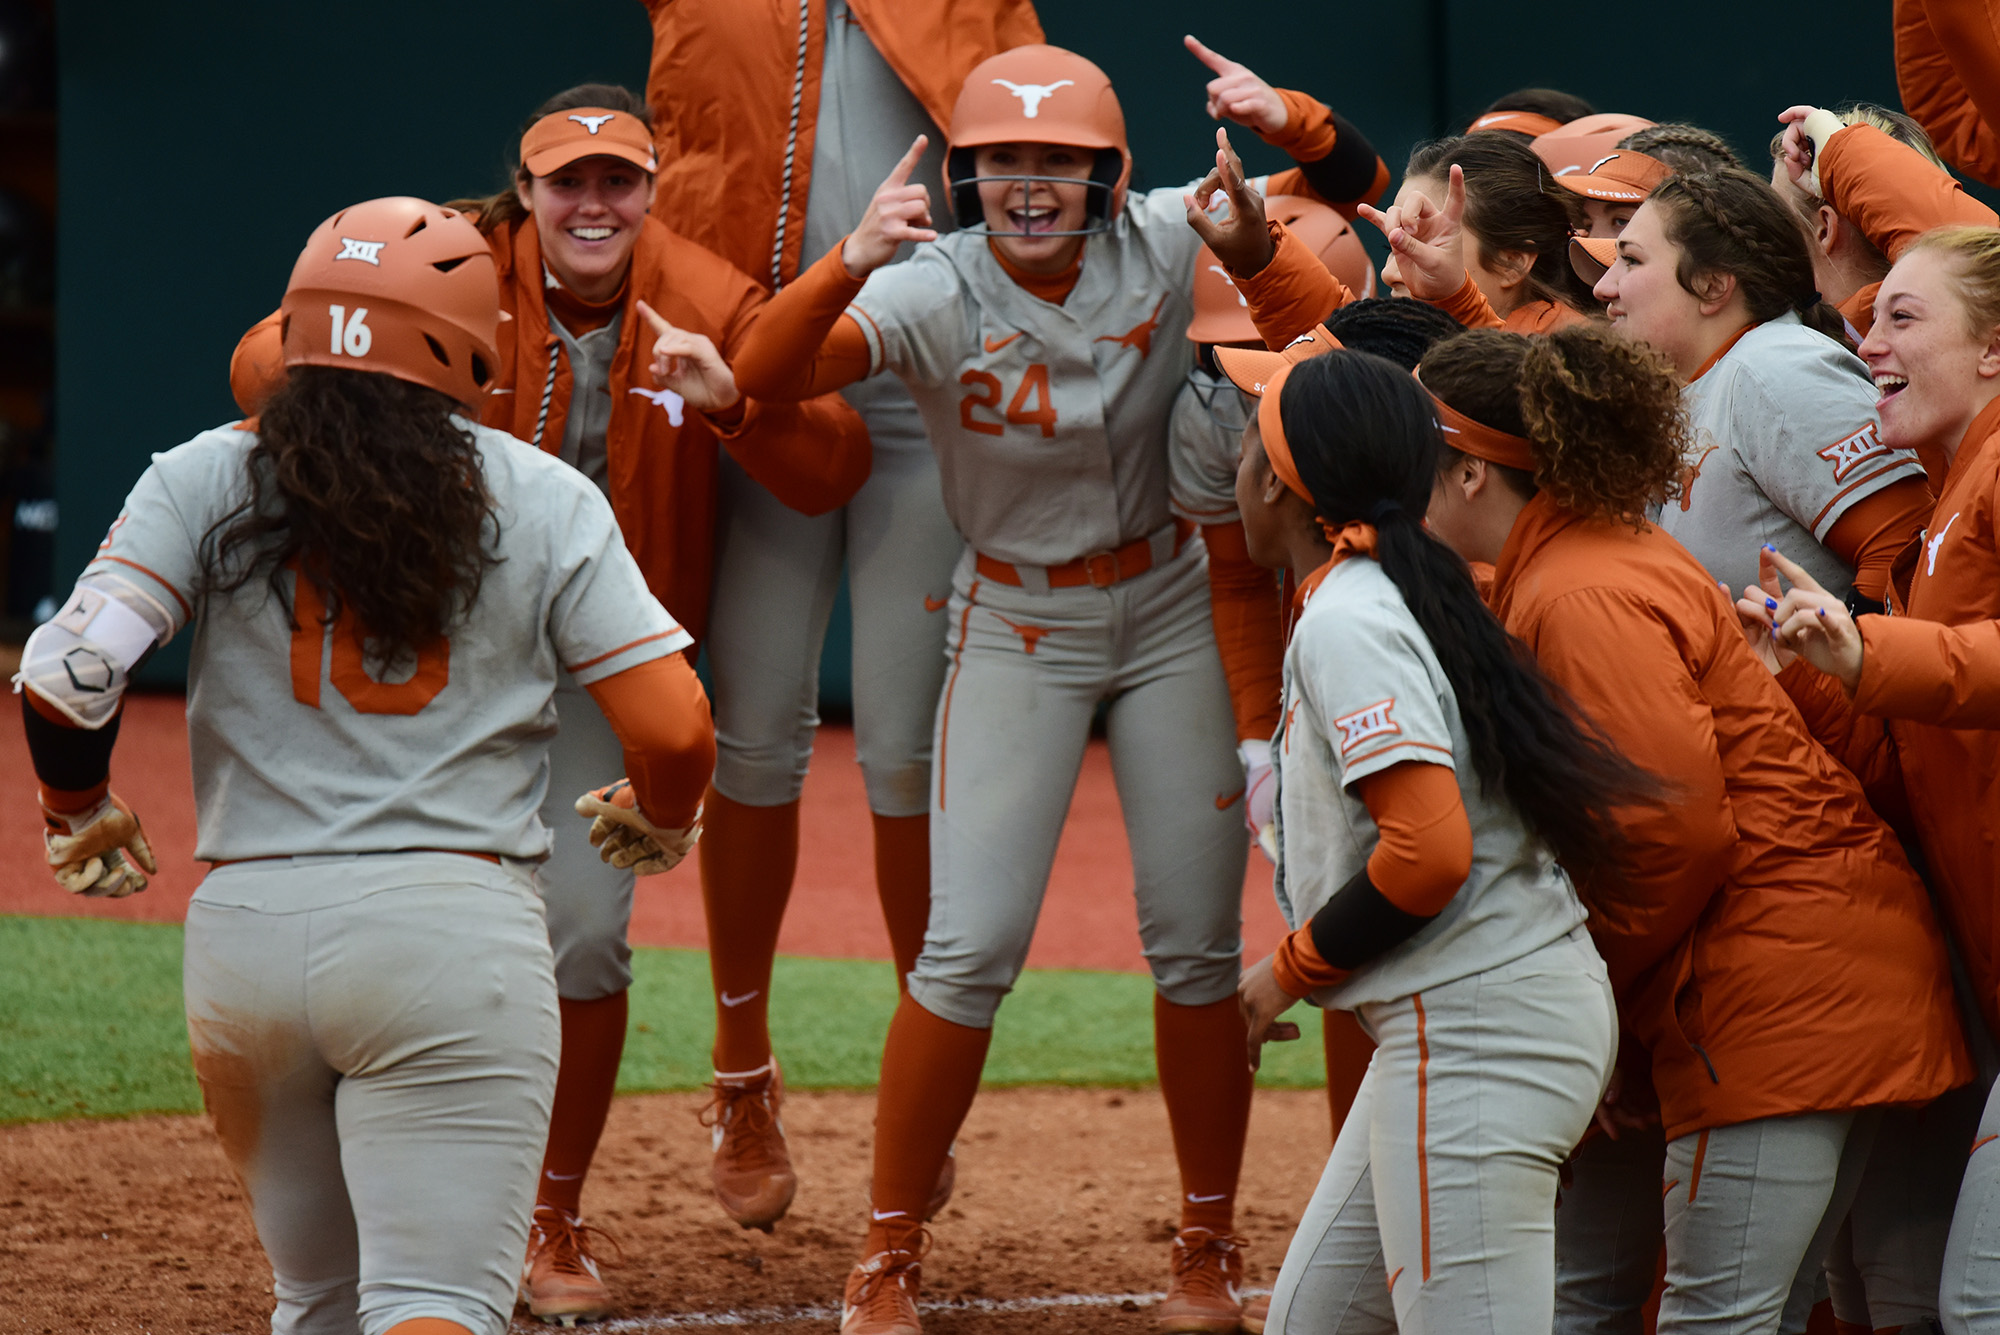 Garage Games Invitational No 9 Softball Preview Longhorn Invitational University Of Texas